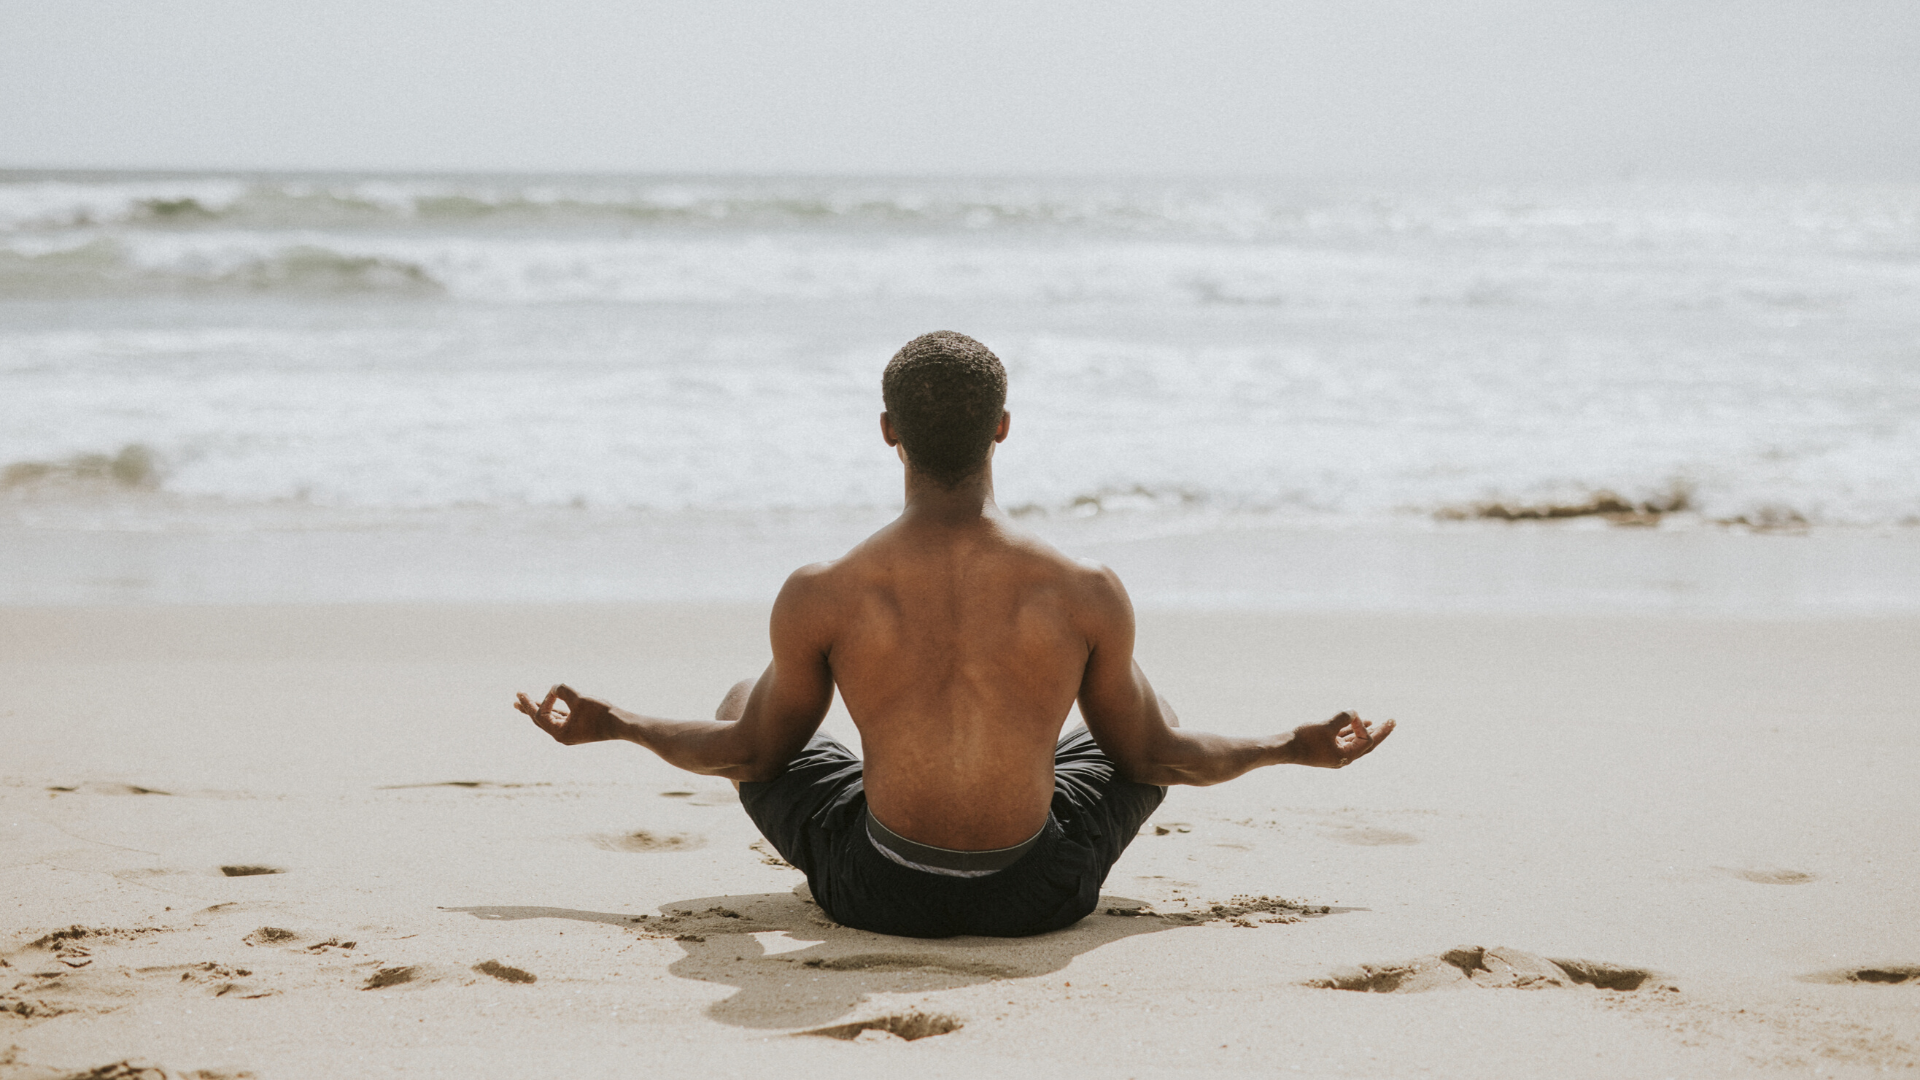 beginner_male_yoga_student_enjoying_the_benefits_of_practicing_meditation